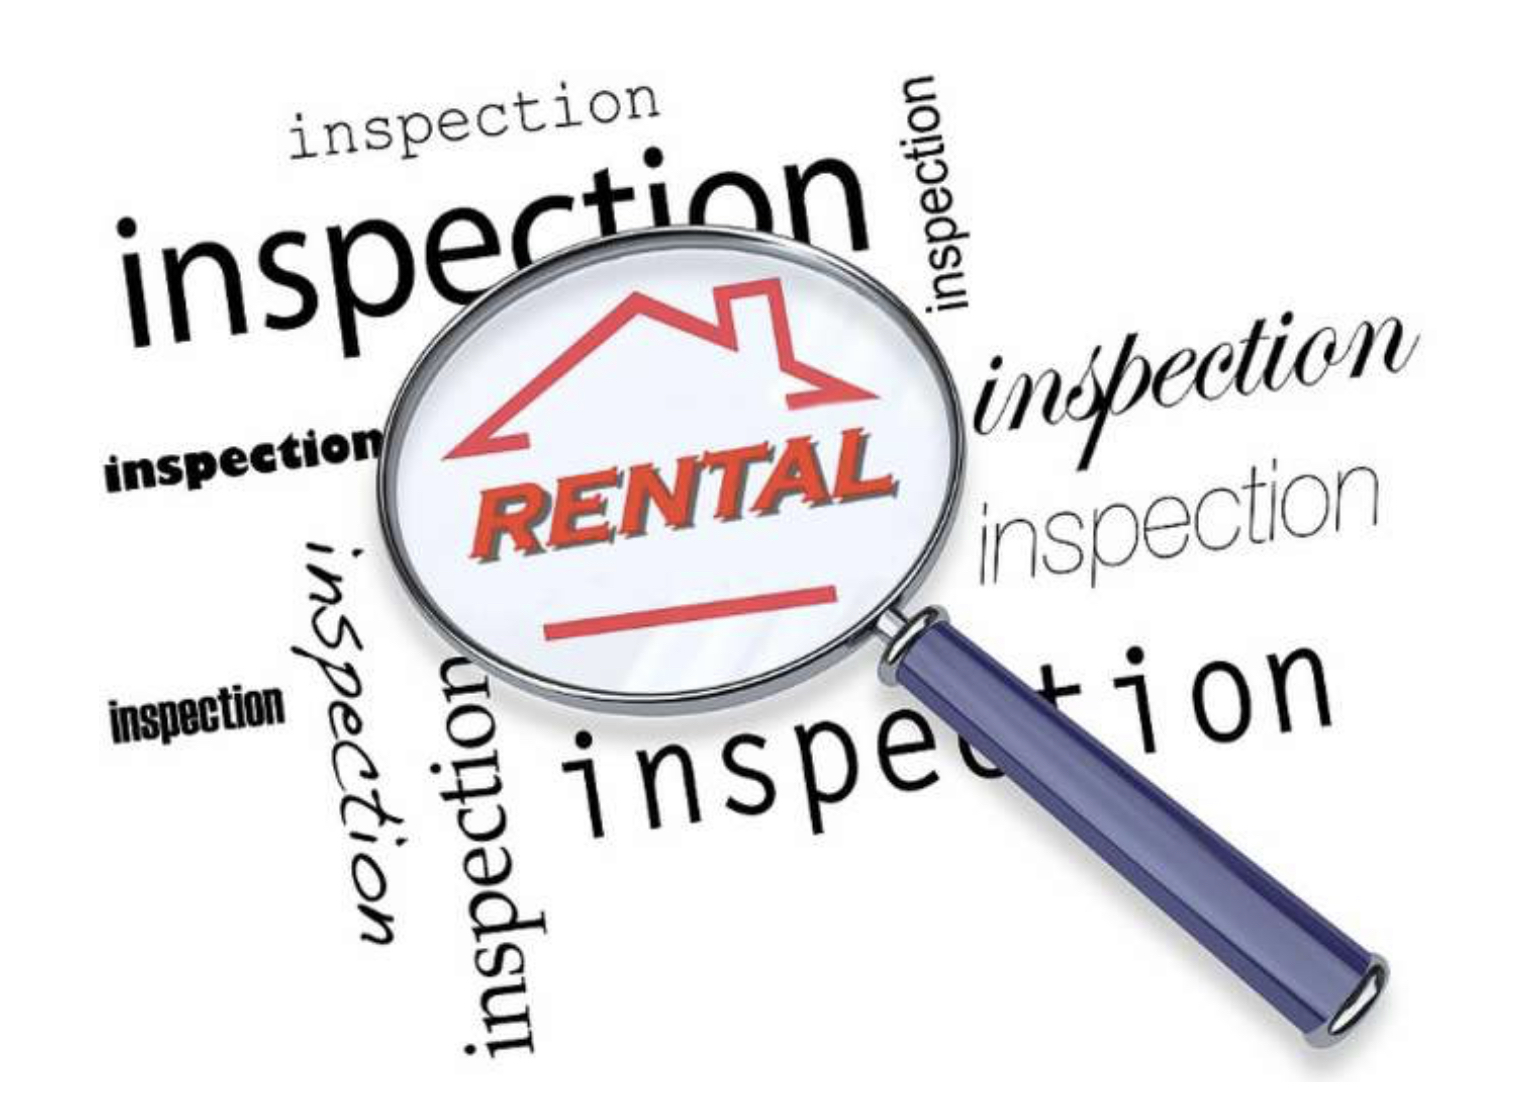 ROUTINE INSPECTIONS – WHY DO WE DO THEM? WHAT DO WE LOOK FOR?